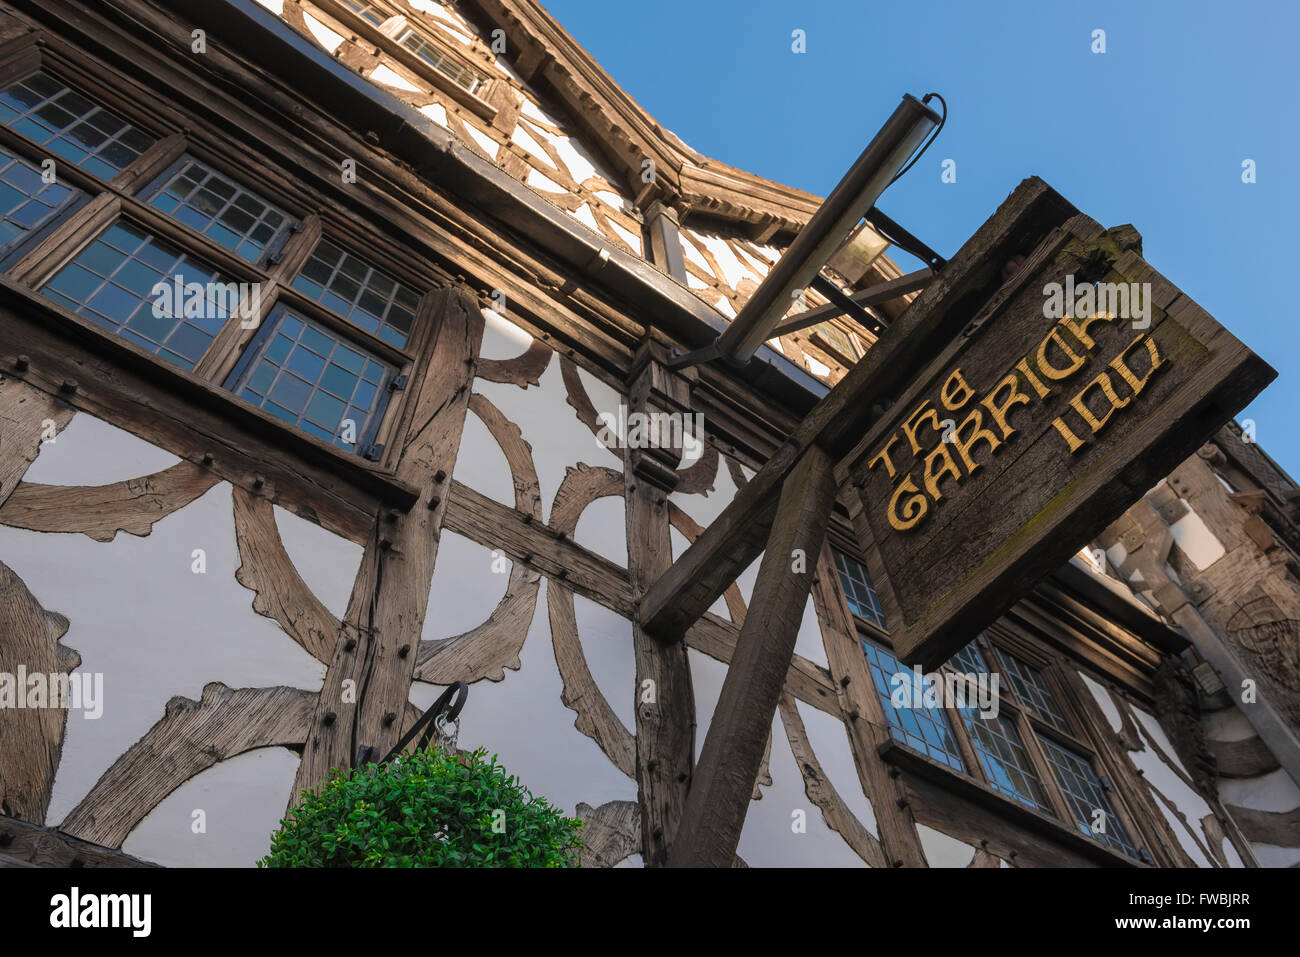 Detail of The Garrick Inn, a typical medieval timber-framed building in the High Street, Stratford Upon Avon, England. - Stock Image